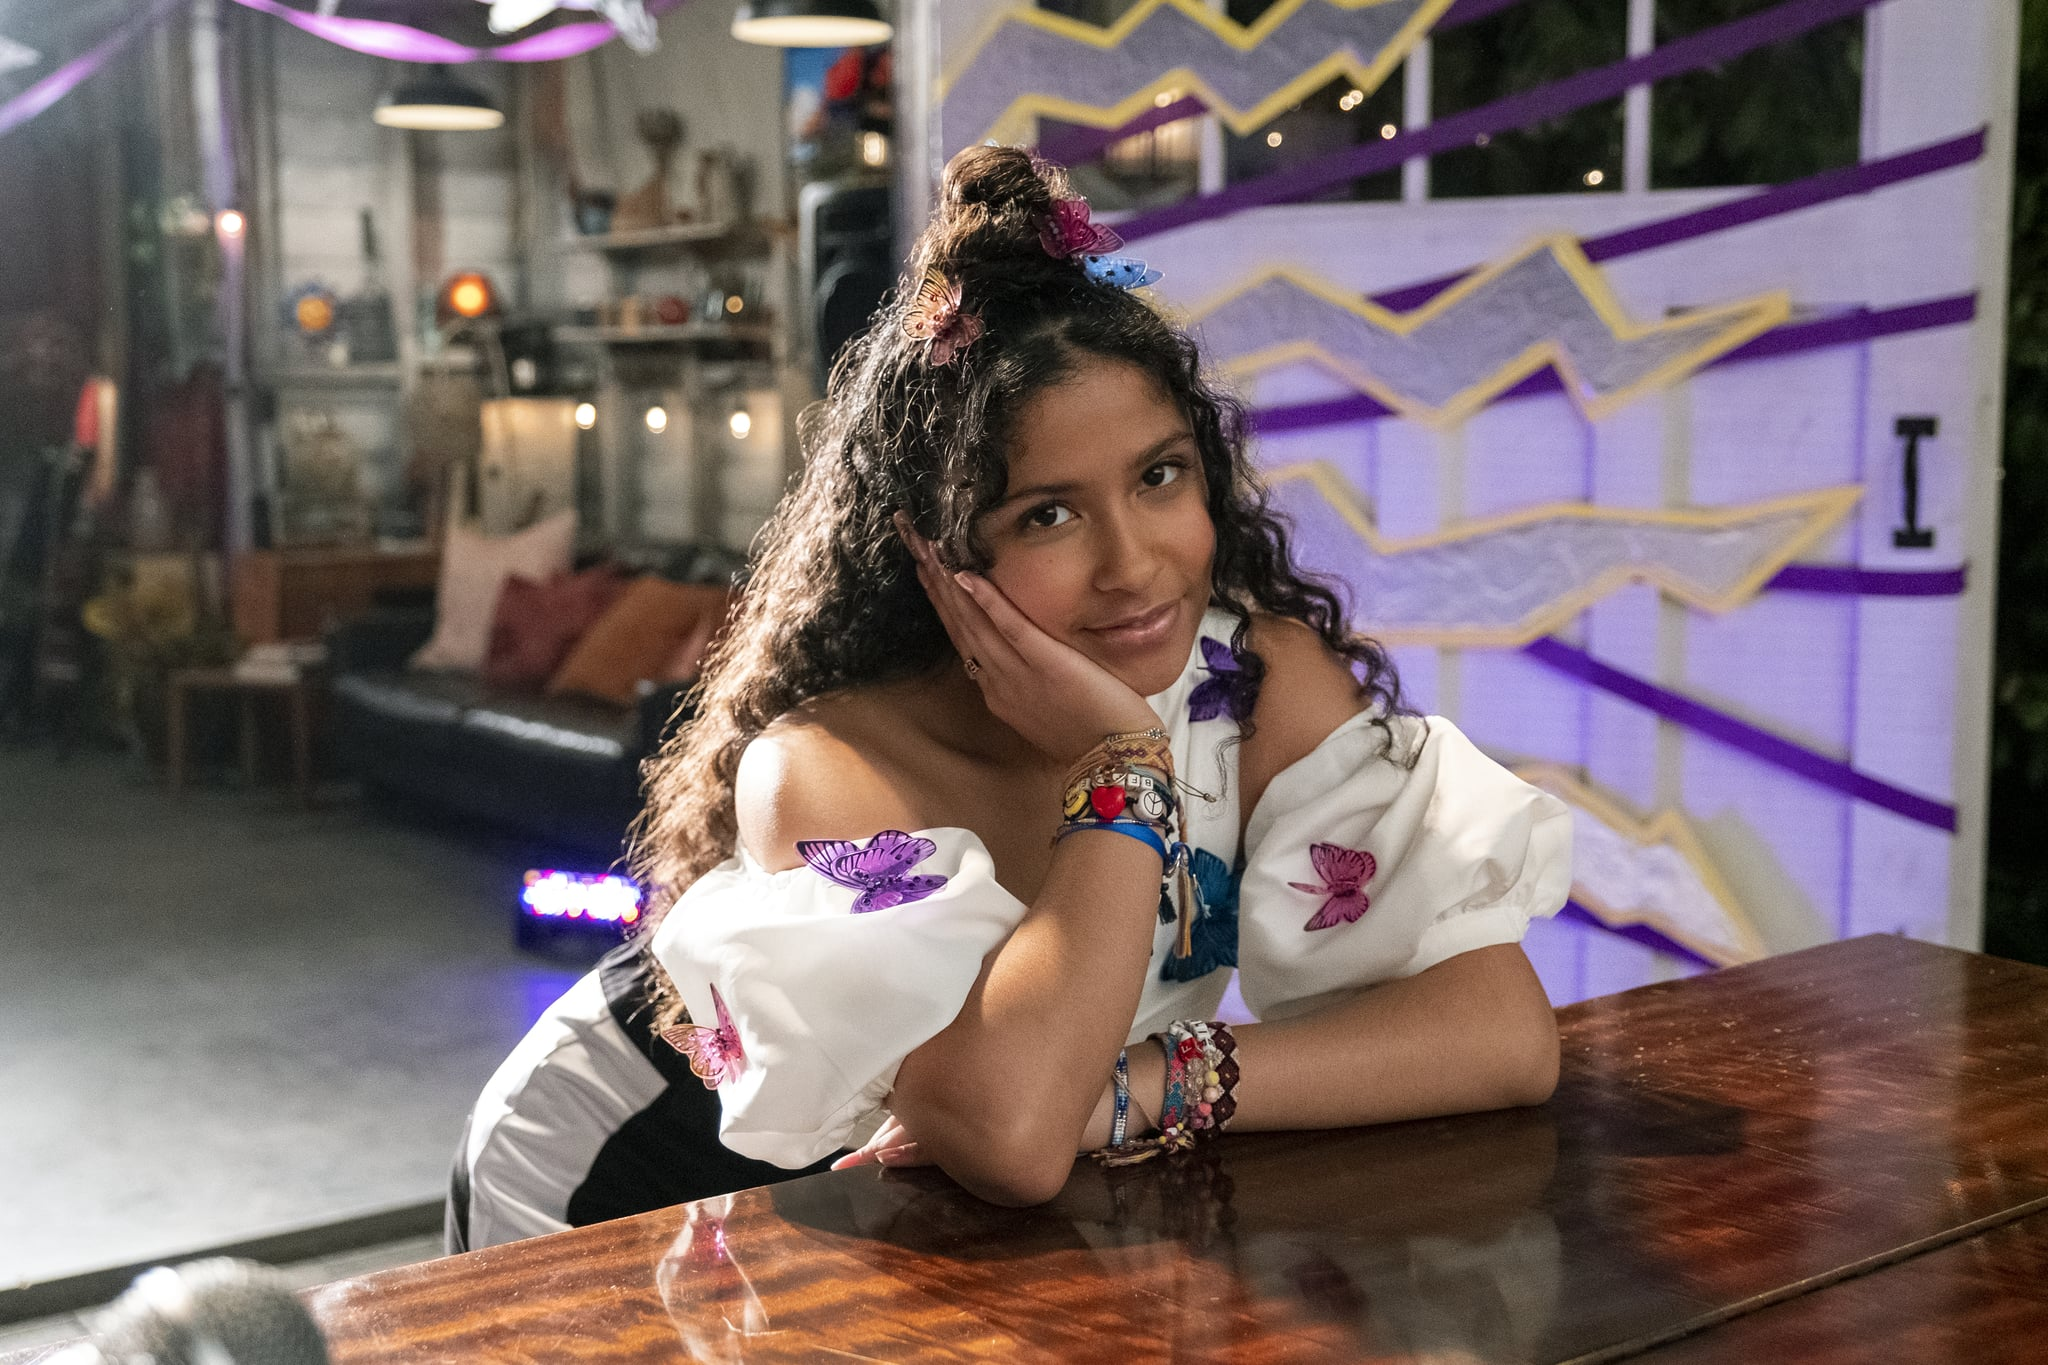 JULIE AND THE PHANTOMS (L to R) MADISON REYES as JULIE in episode 107 of JULIE AND THE PHANTOMS Cr. KAILEY SCHWERMAN/NETFLIX  2020